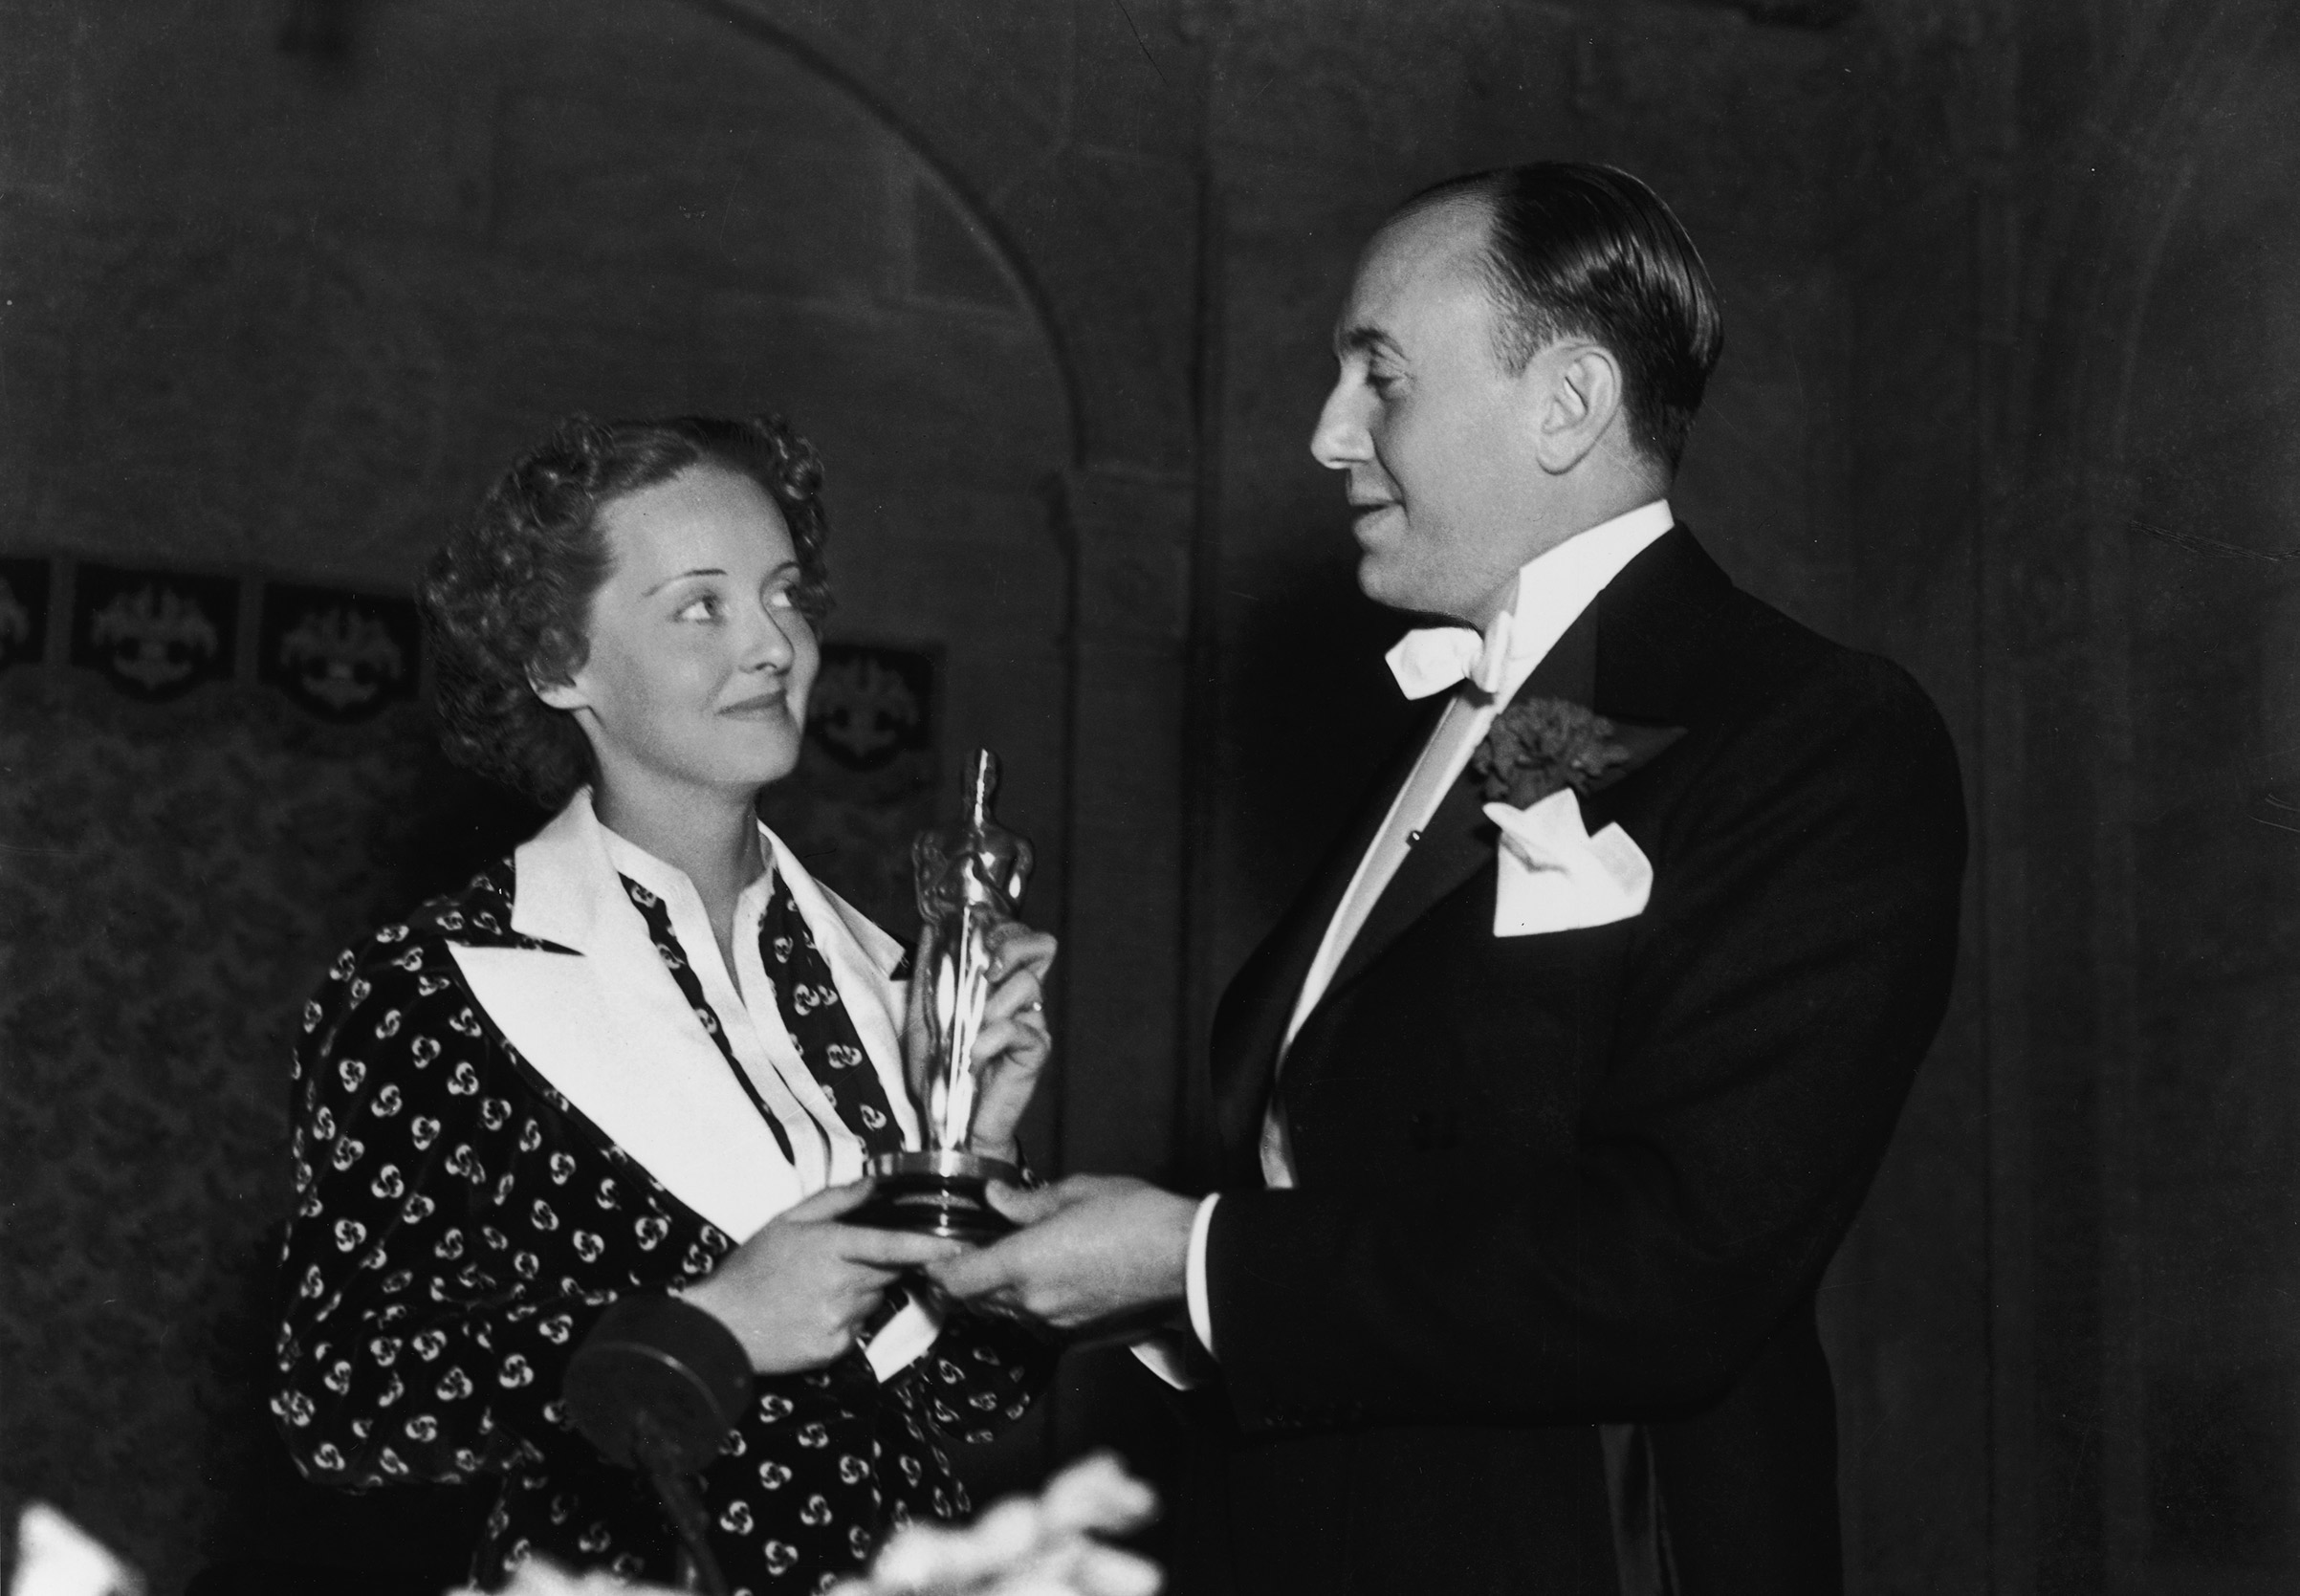 Actor Bette Davis and producer Jack Warner, one of the founders of Warner Bros. Pictures, hold Davis's Oscar for Best Actress for <i>Dangerous</i> at the Biltmore Hotel in Los Angeles, California, on March 5, 1936.